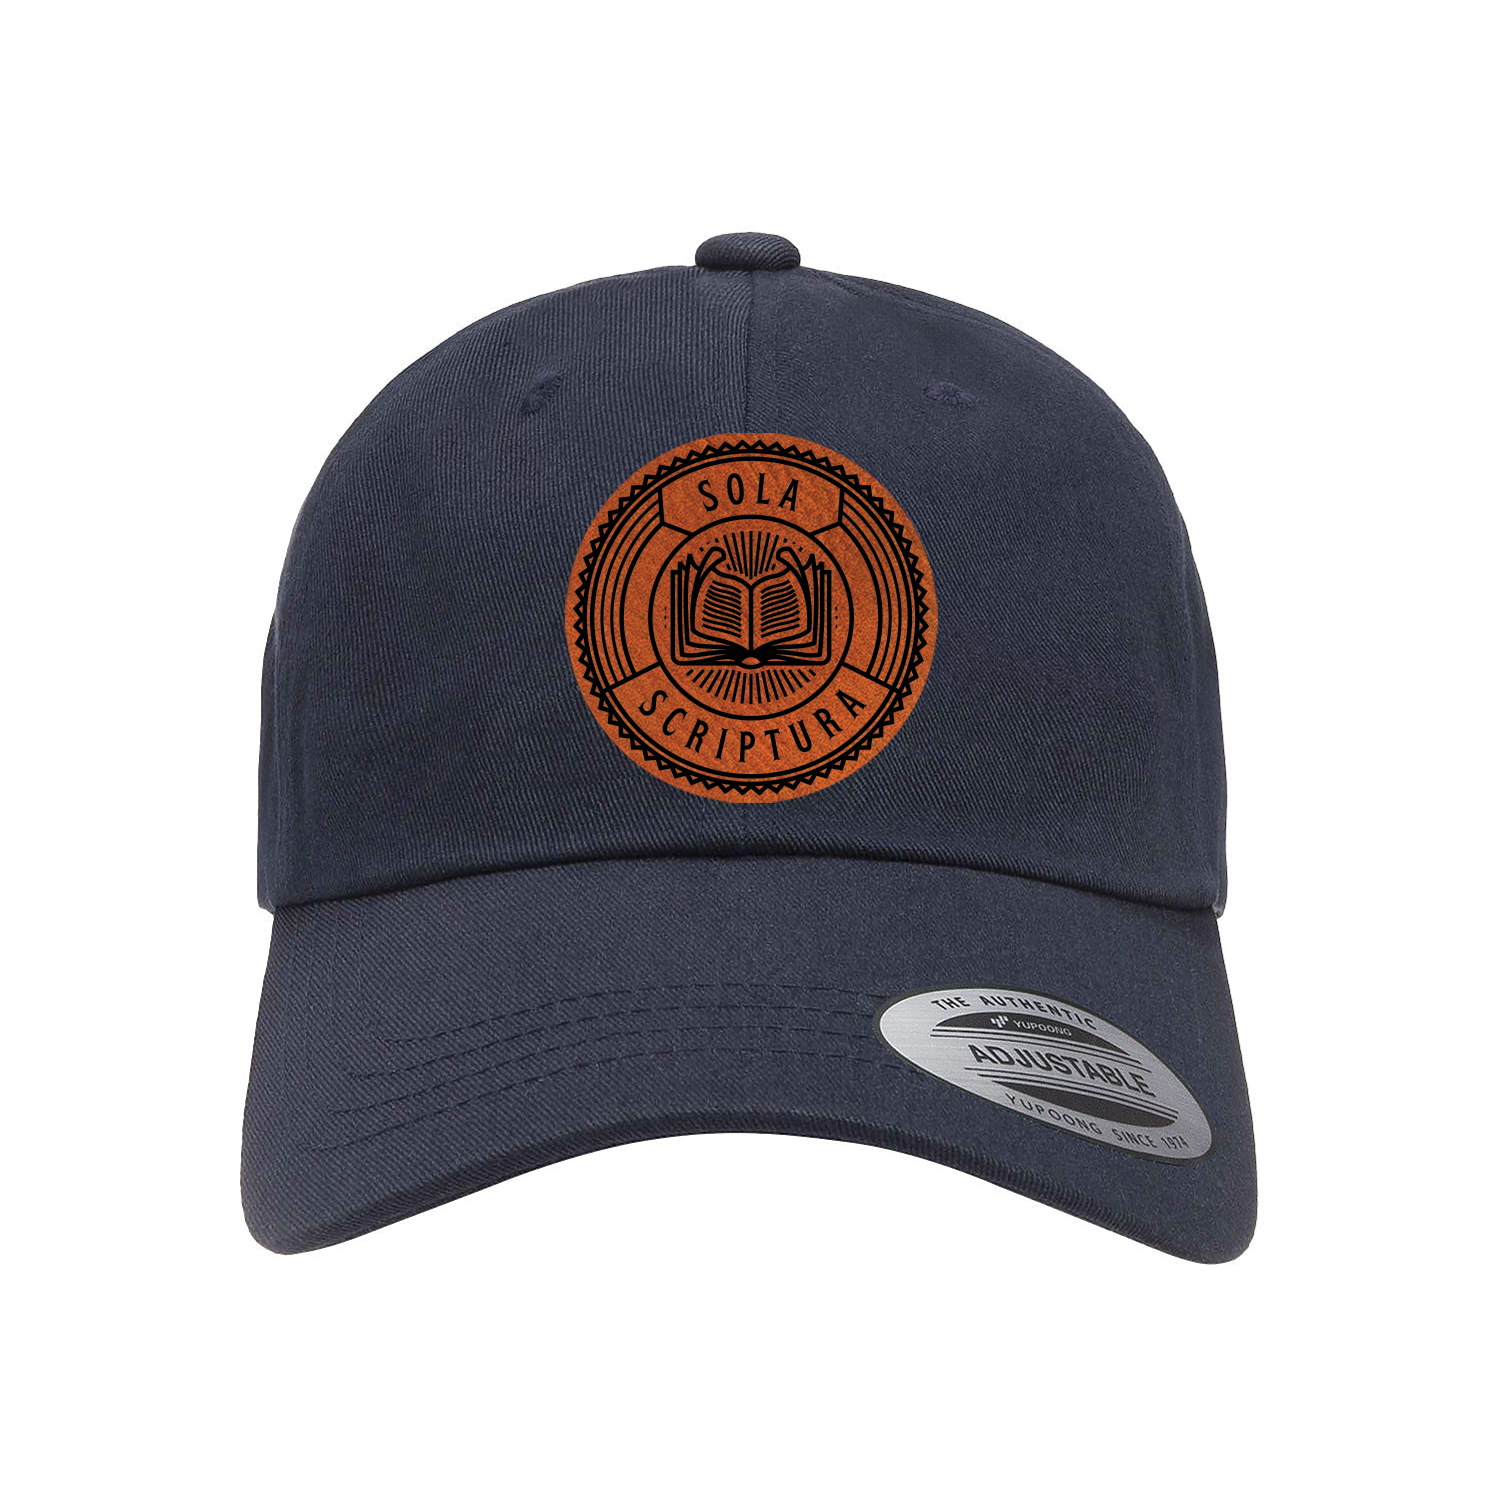 Sola Scriptura Badge Patch Dad Hat